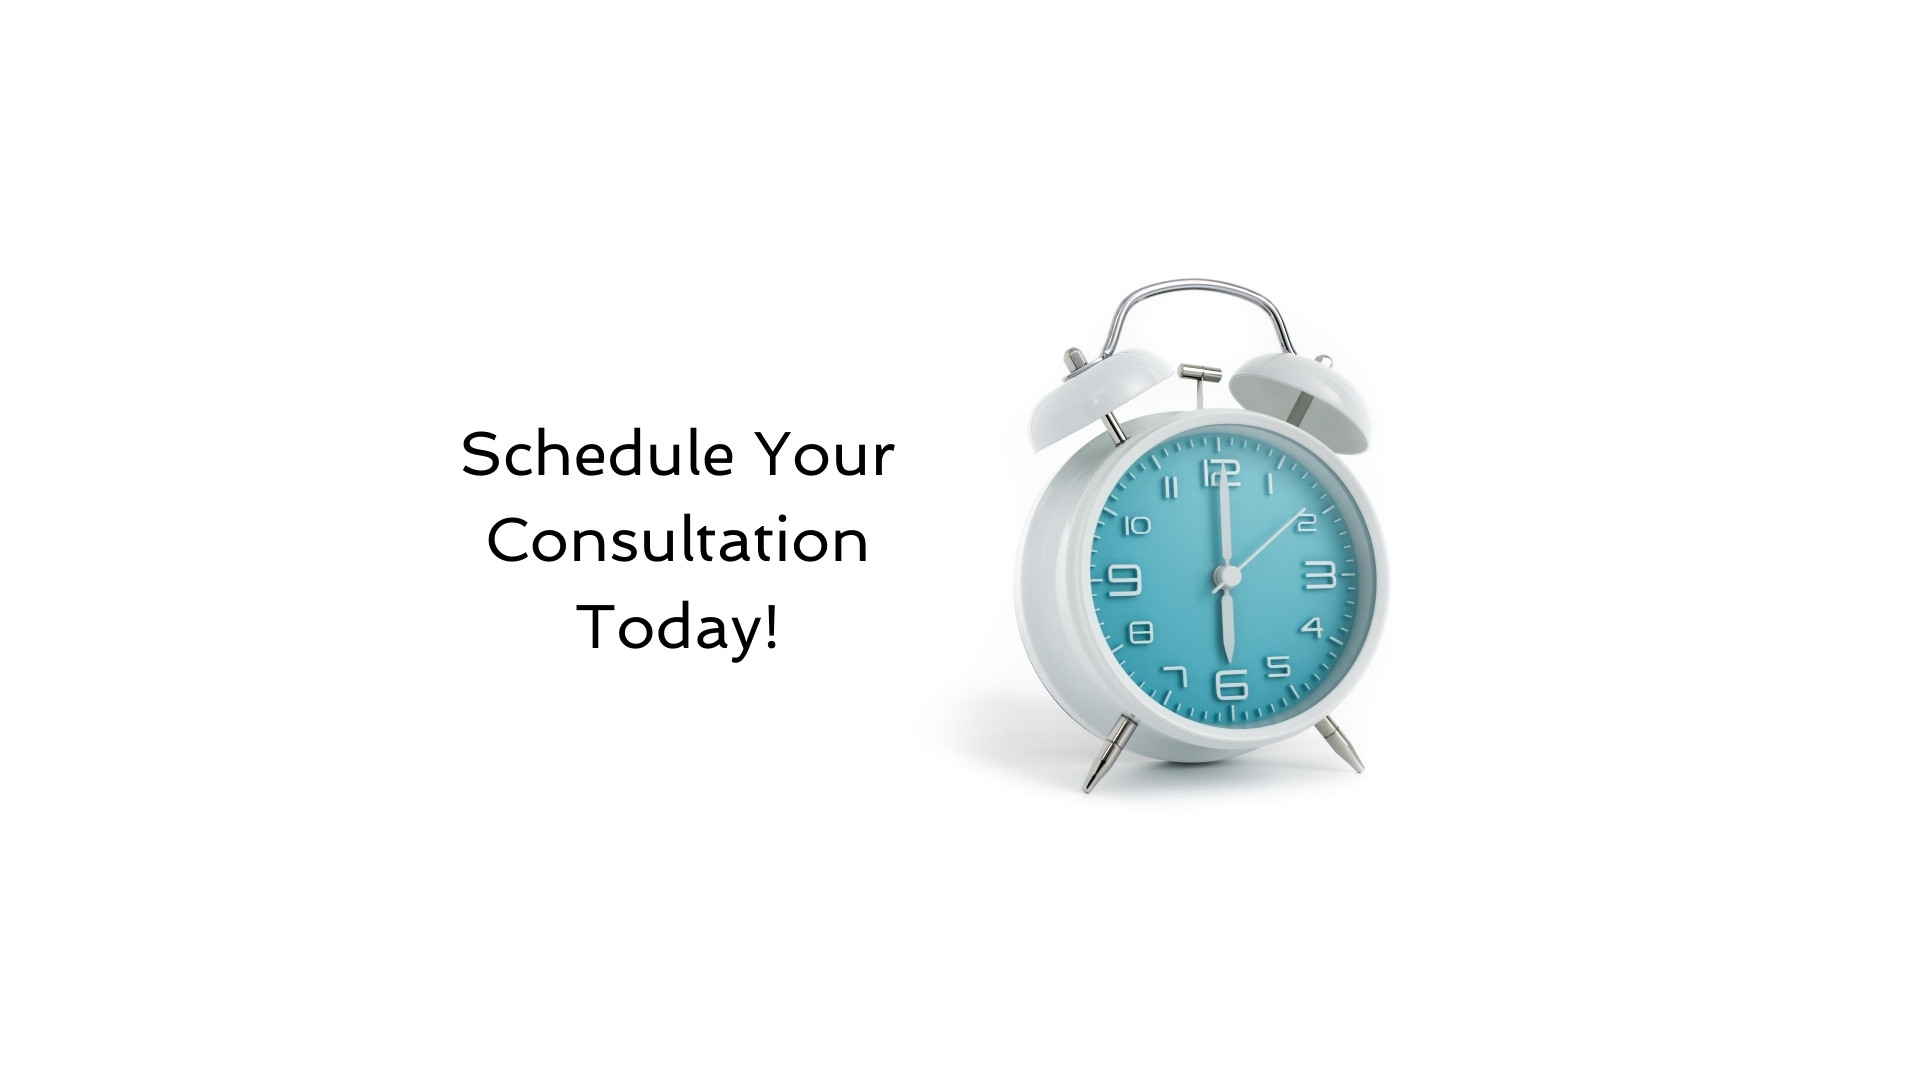 Schedule Your Intake Consult